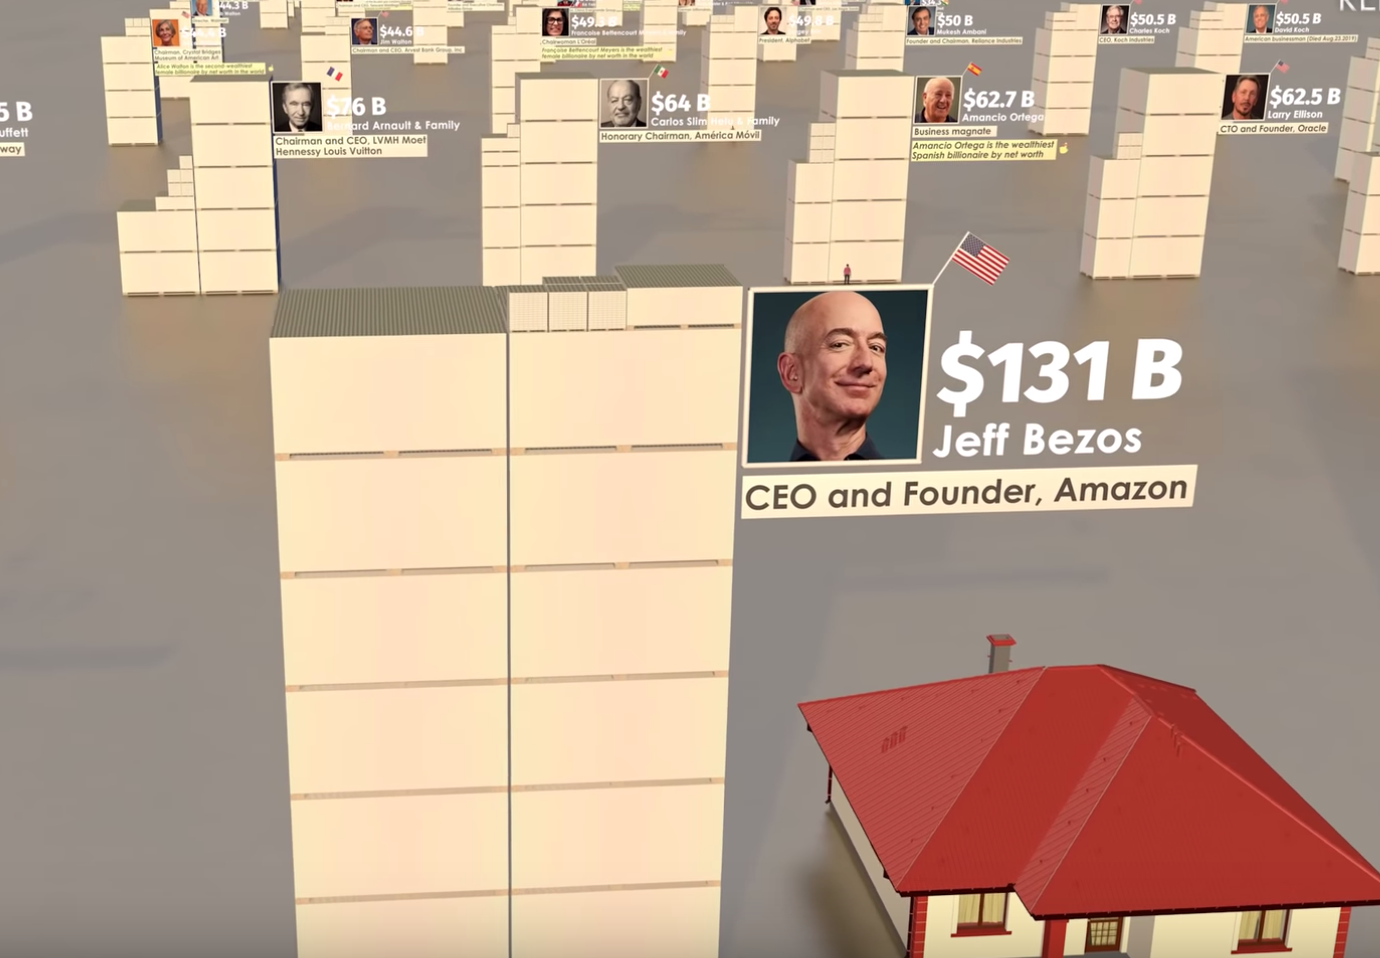 Visualization Of How Rich The Billionaires In 2019 Are Has A Twist In The End